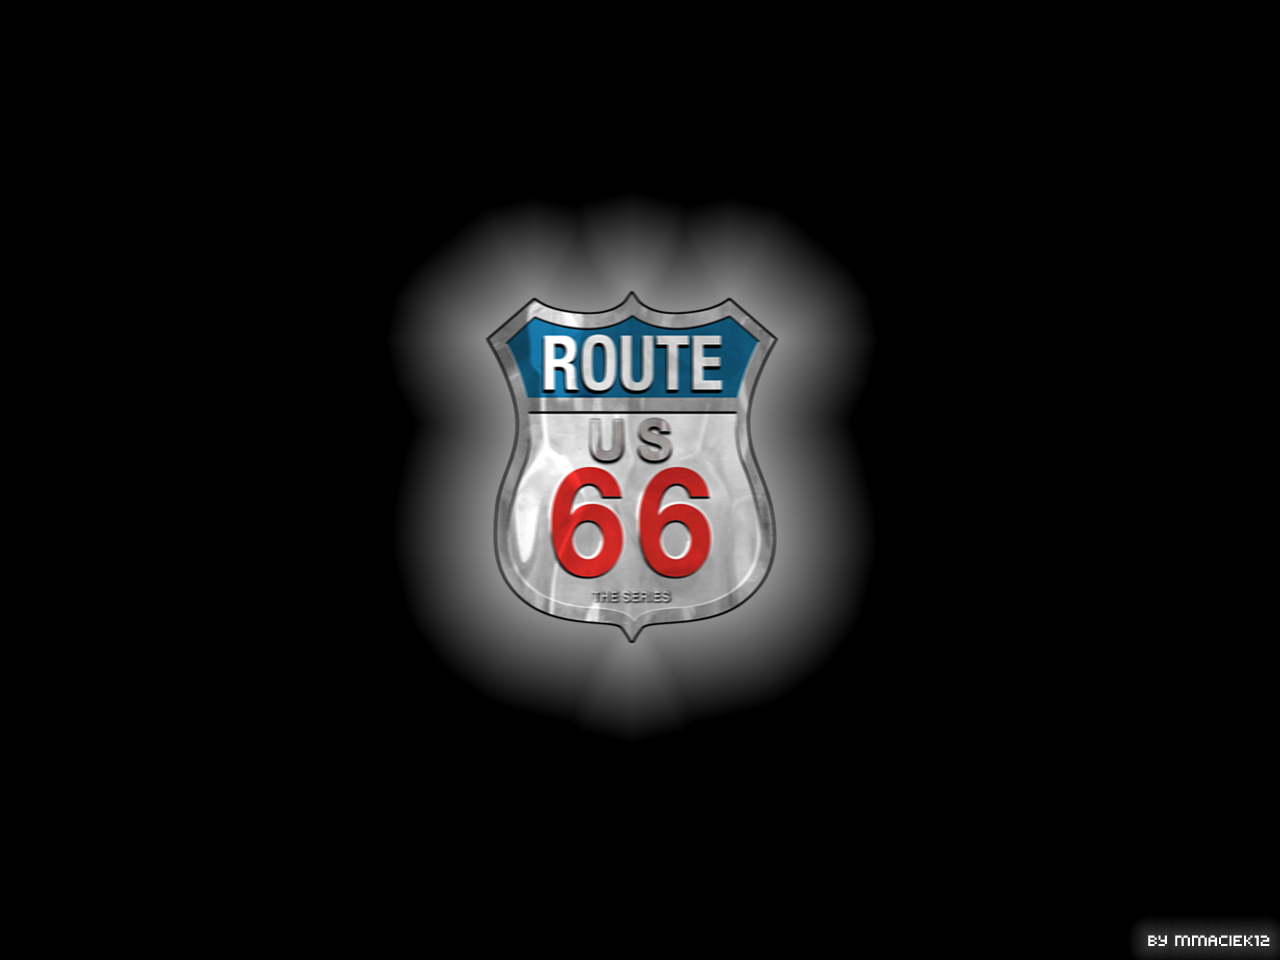 Route 66 background United States of America wallpapers 1280x960